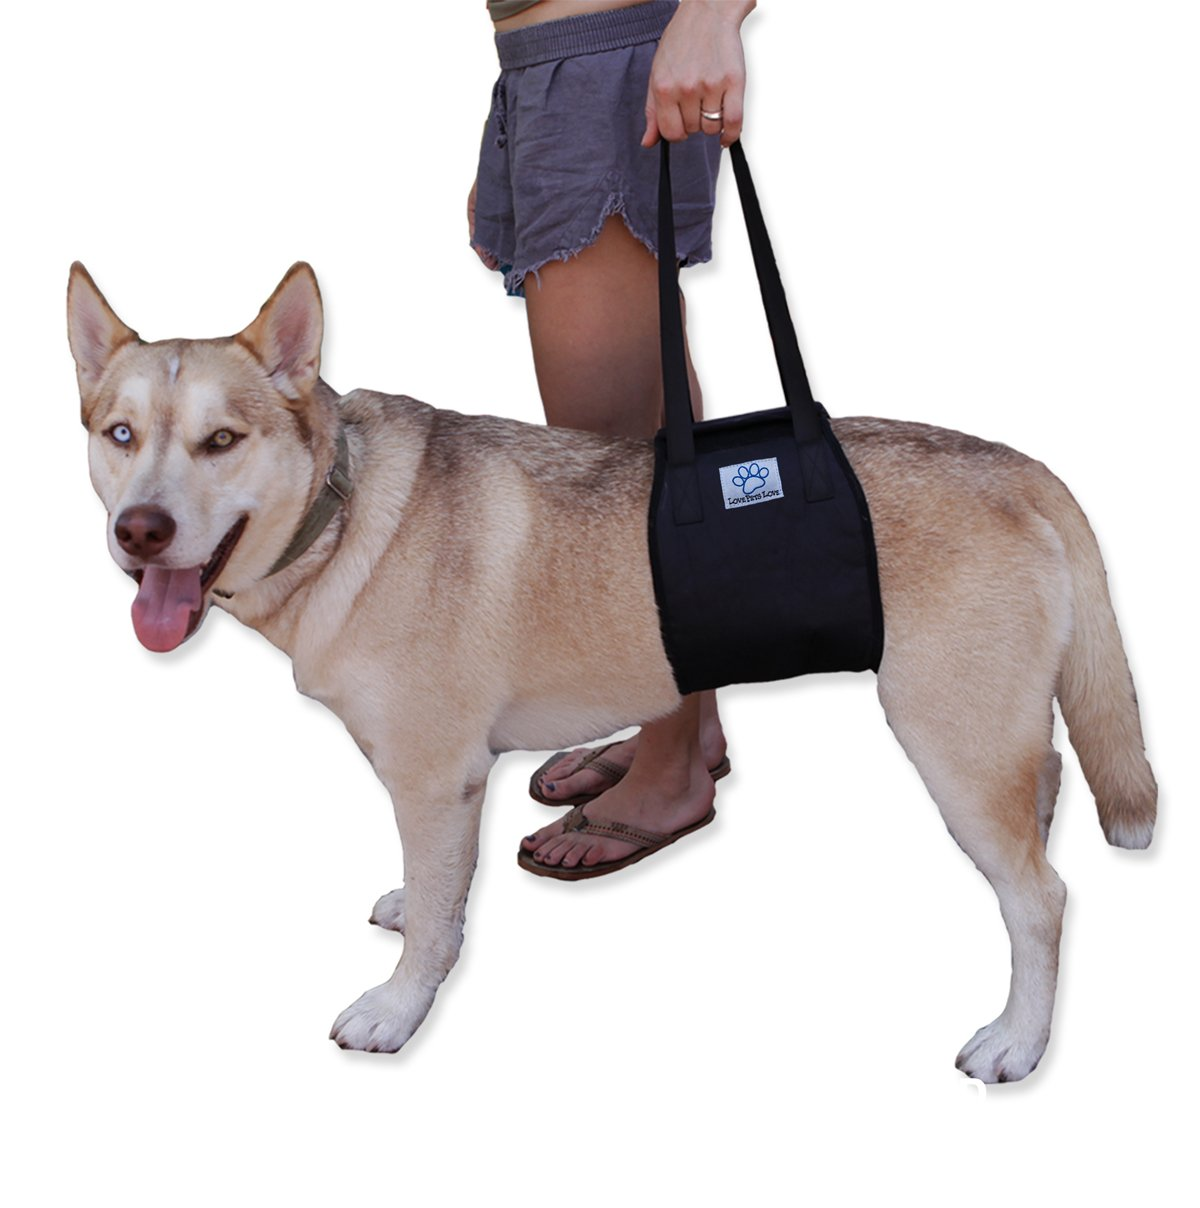 Love Pets Love Vet Approved Dog Lift Support Harness Canine aid  Lifting  Older K9 Handle Injuries, Arthritis Weak hind Legs & Joints  Large/X-Large